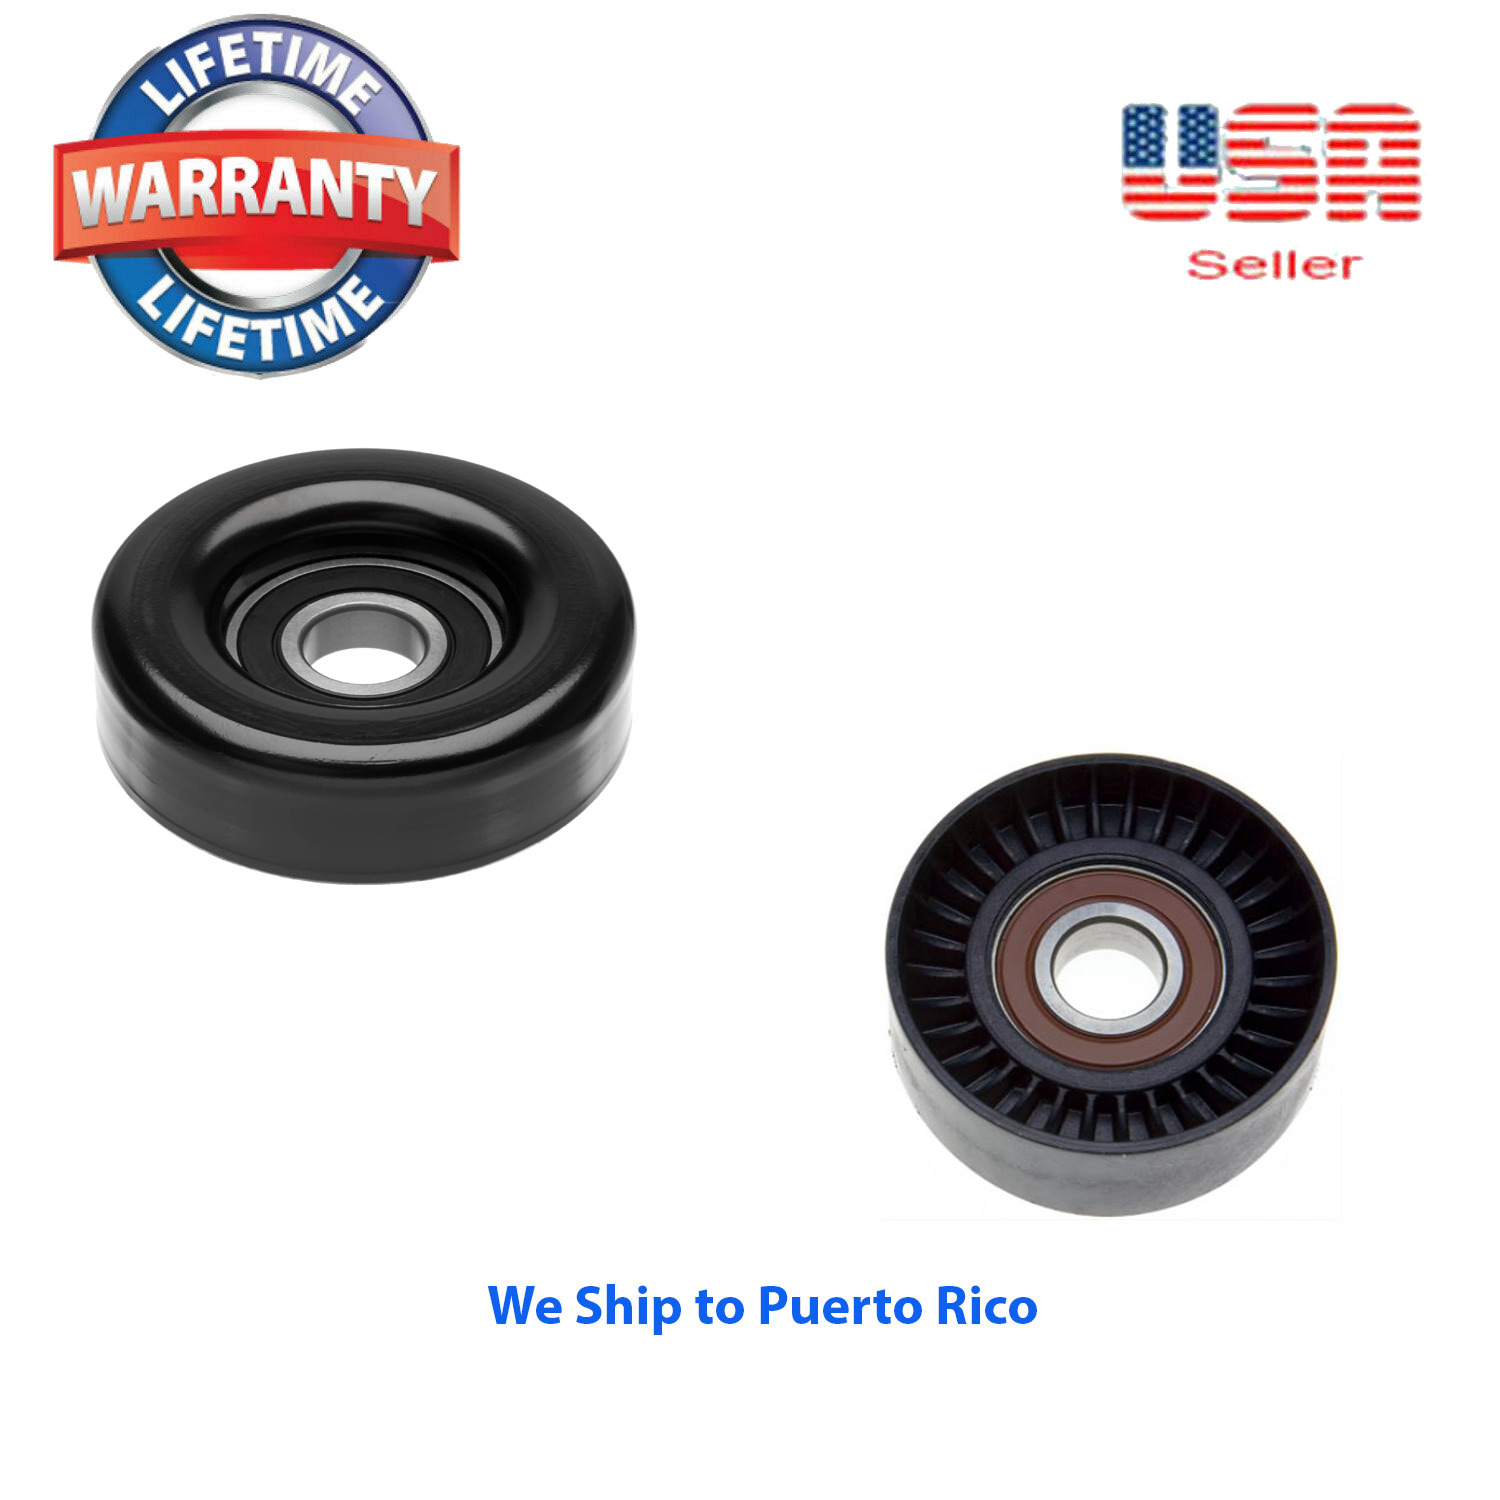 Oil Filters PH820 MADE IN USA FIts: Chrysler Dodge Ford Jeep